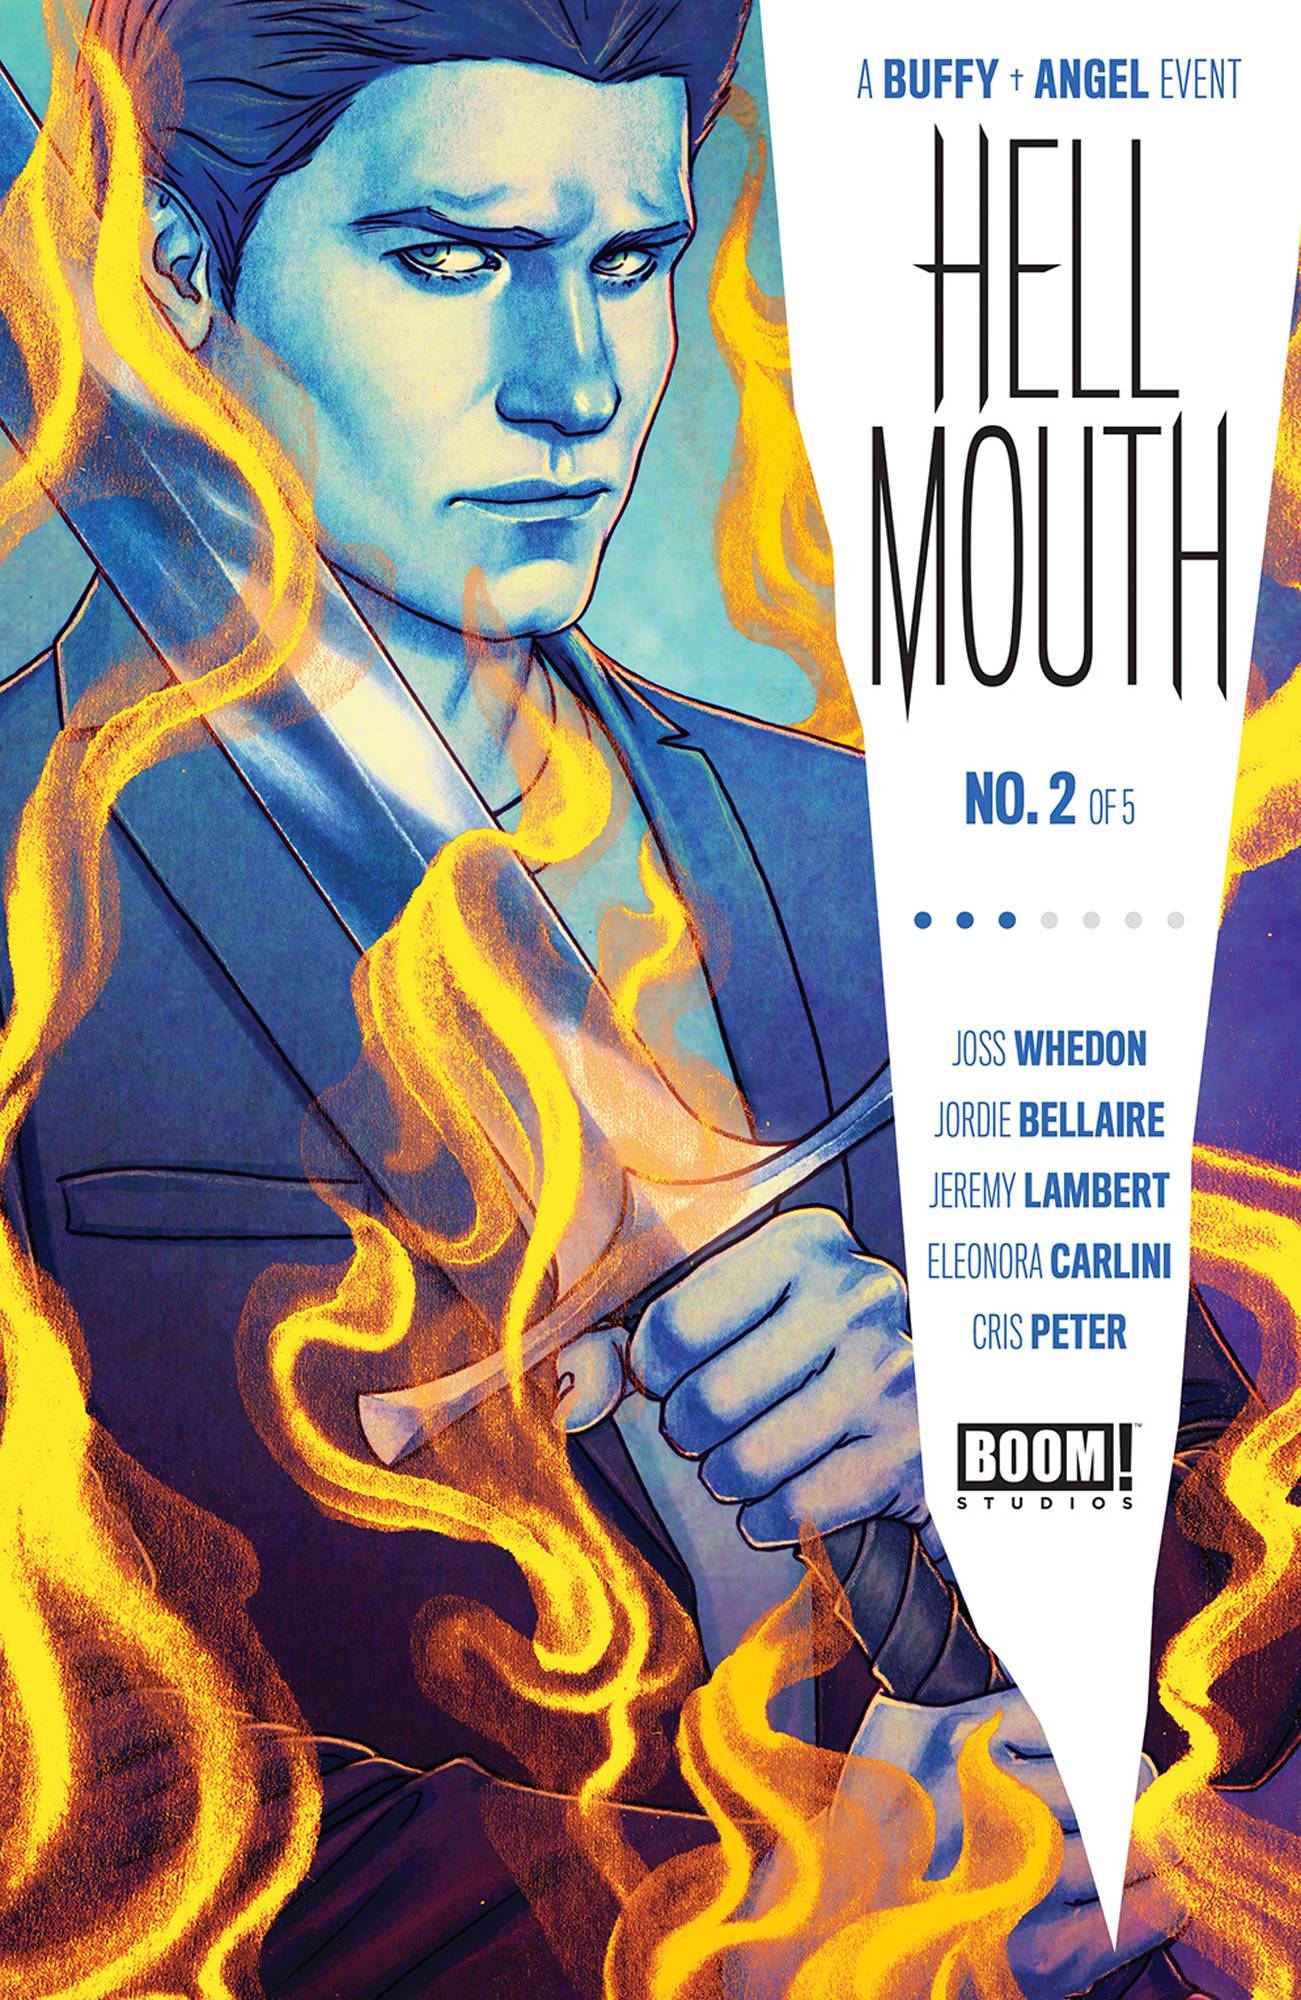 BUFFY VAMPIRE SLAYER ANGEL HELLMOUTH #2 CVR A FRISON